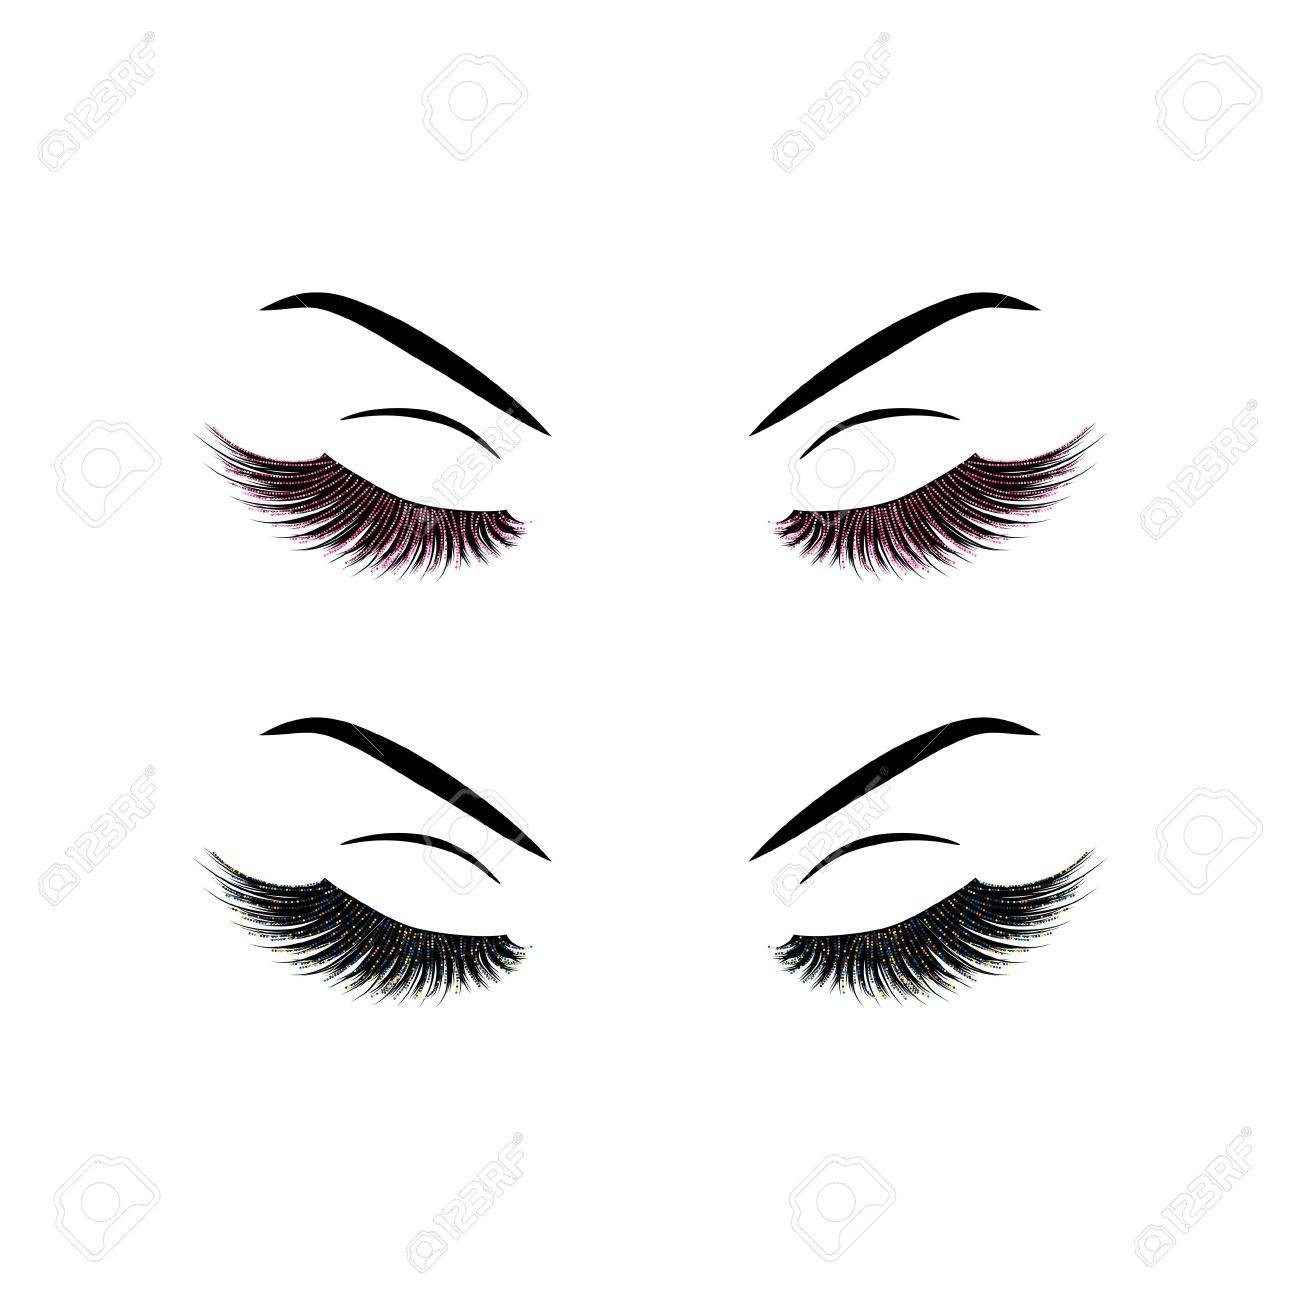 lashes vector illustration royalty free cliparts vectors and stock